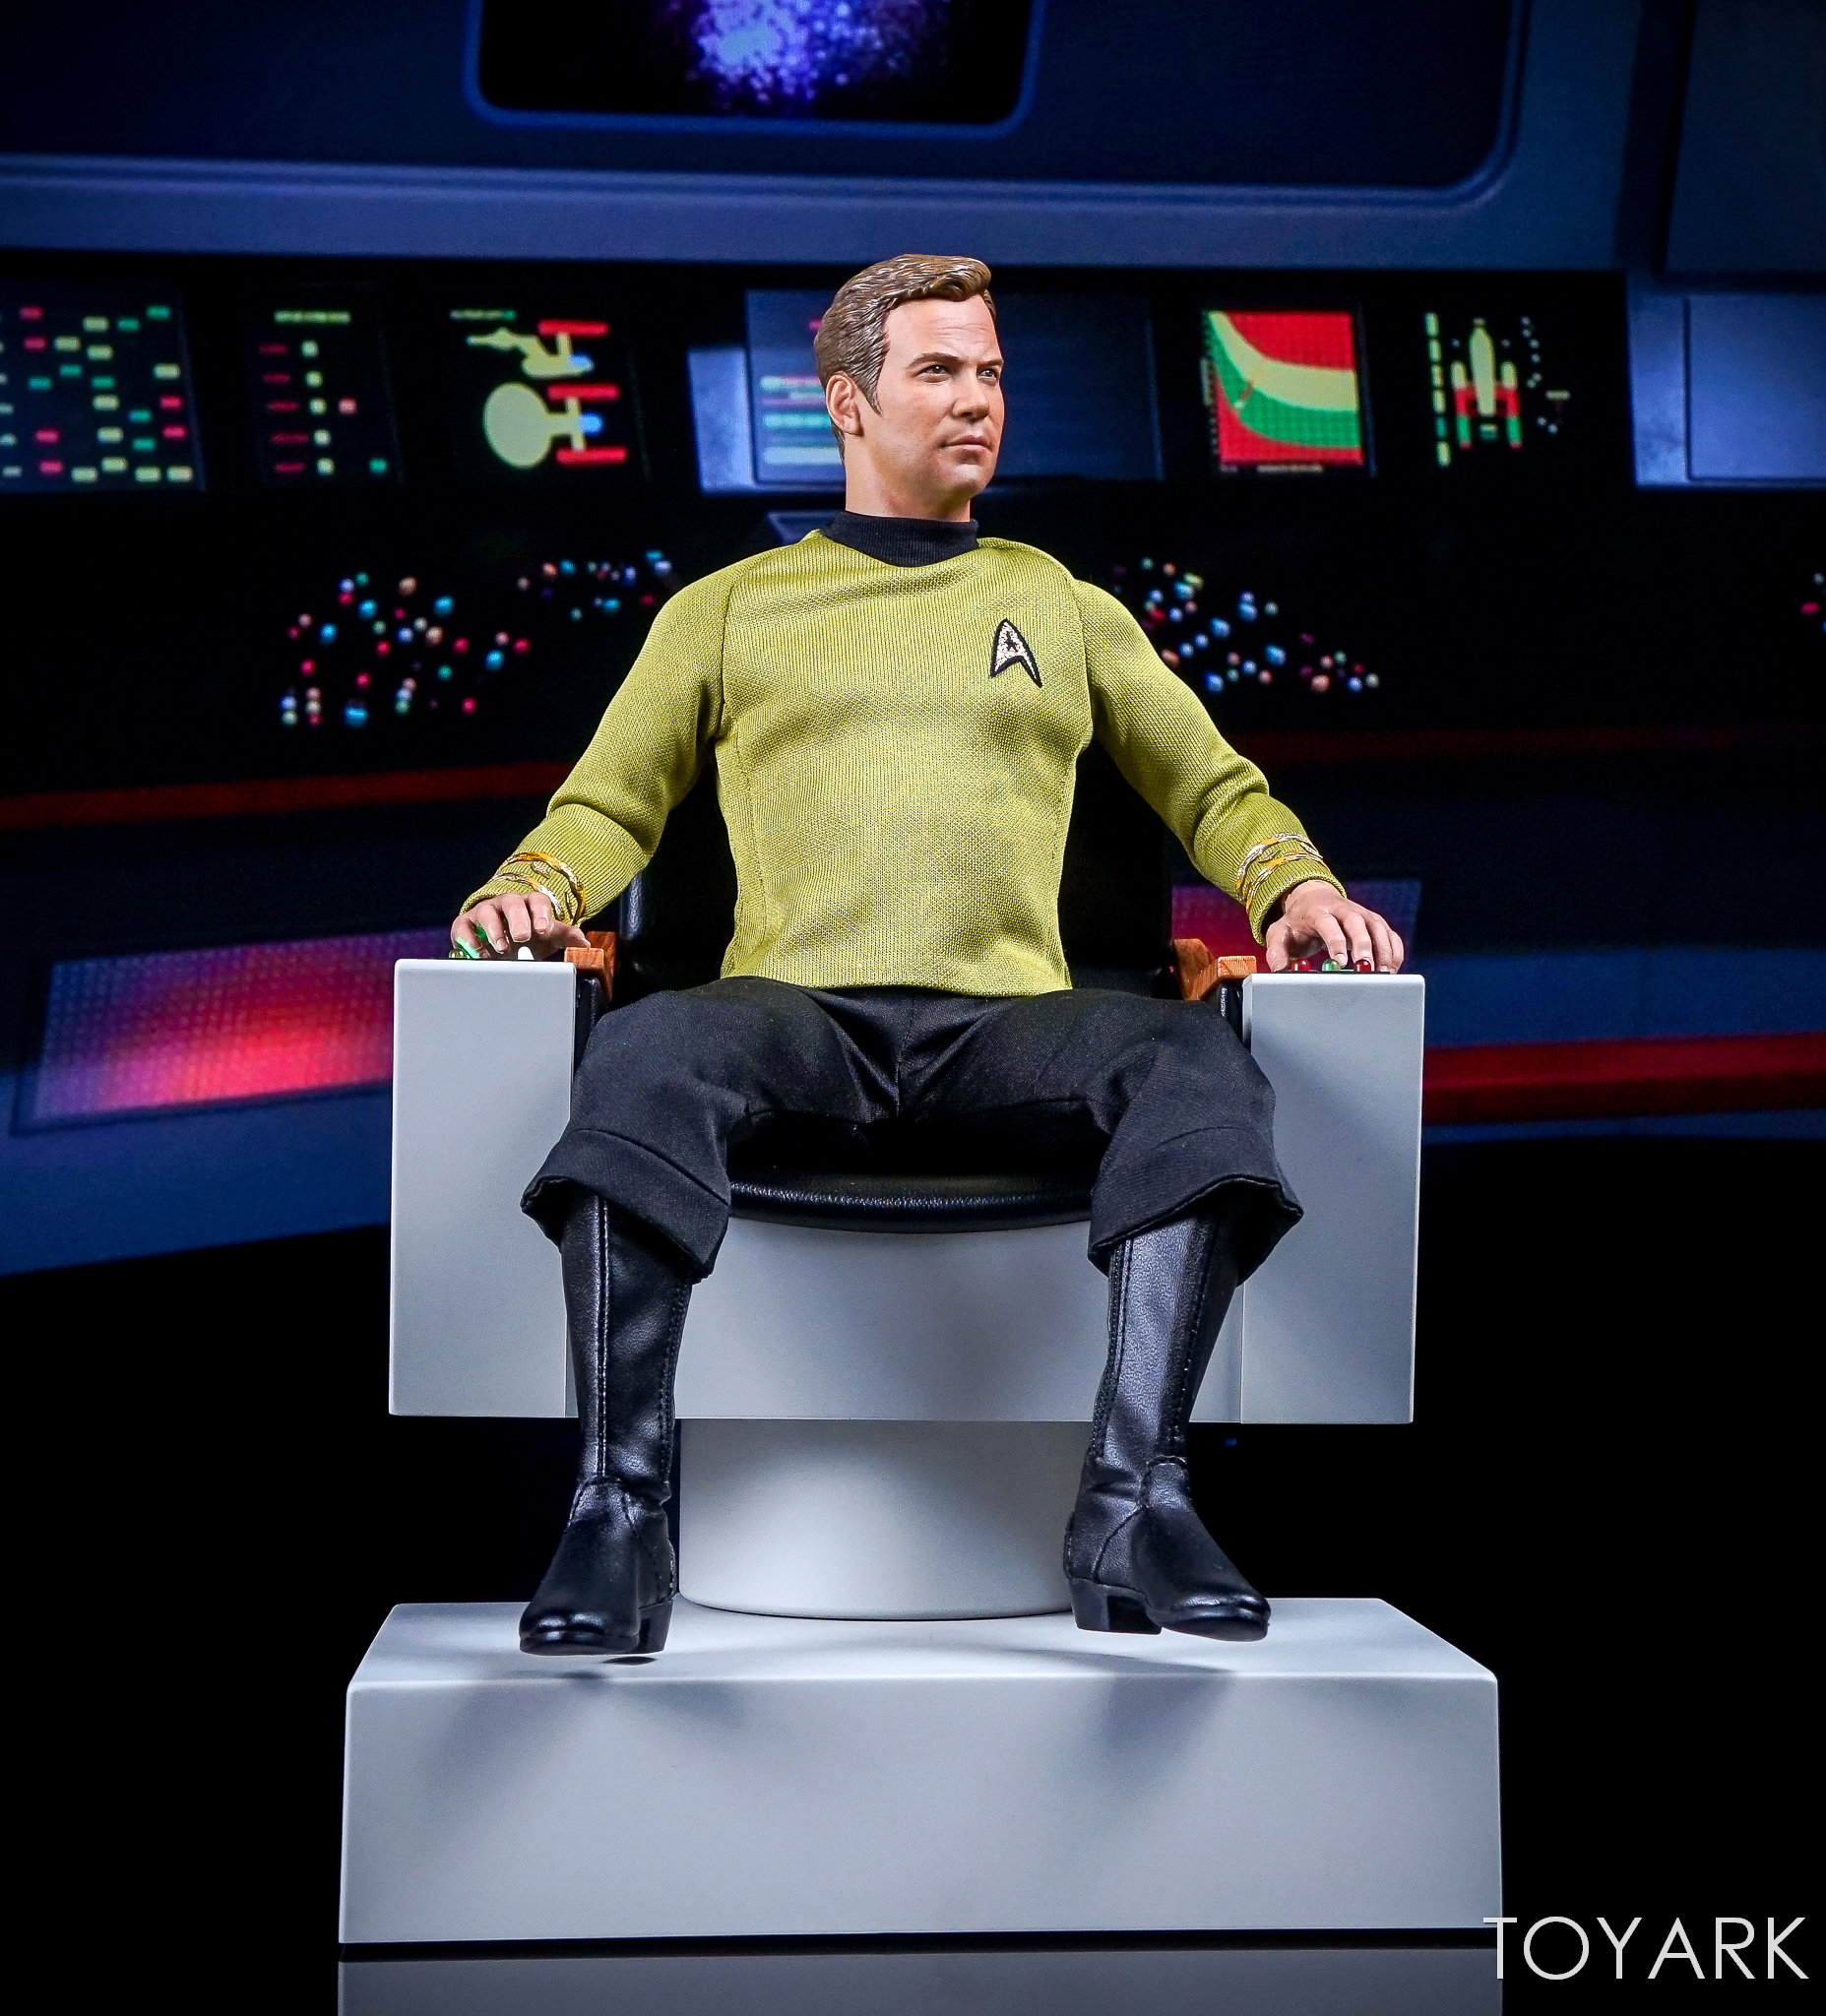 http://news.toyark.com/wp-content/uploads/sites/4/2017/12/QMX-Star-Trek-Captain-Kirk-Chair-046.jpg